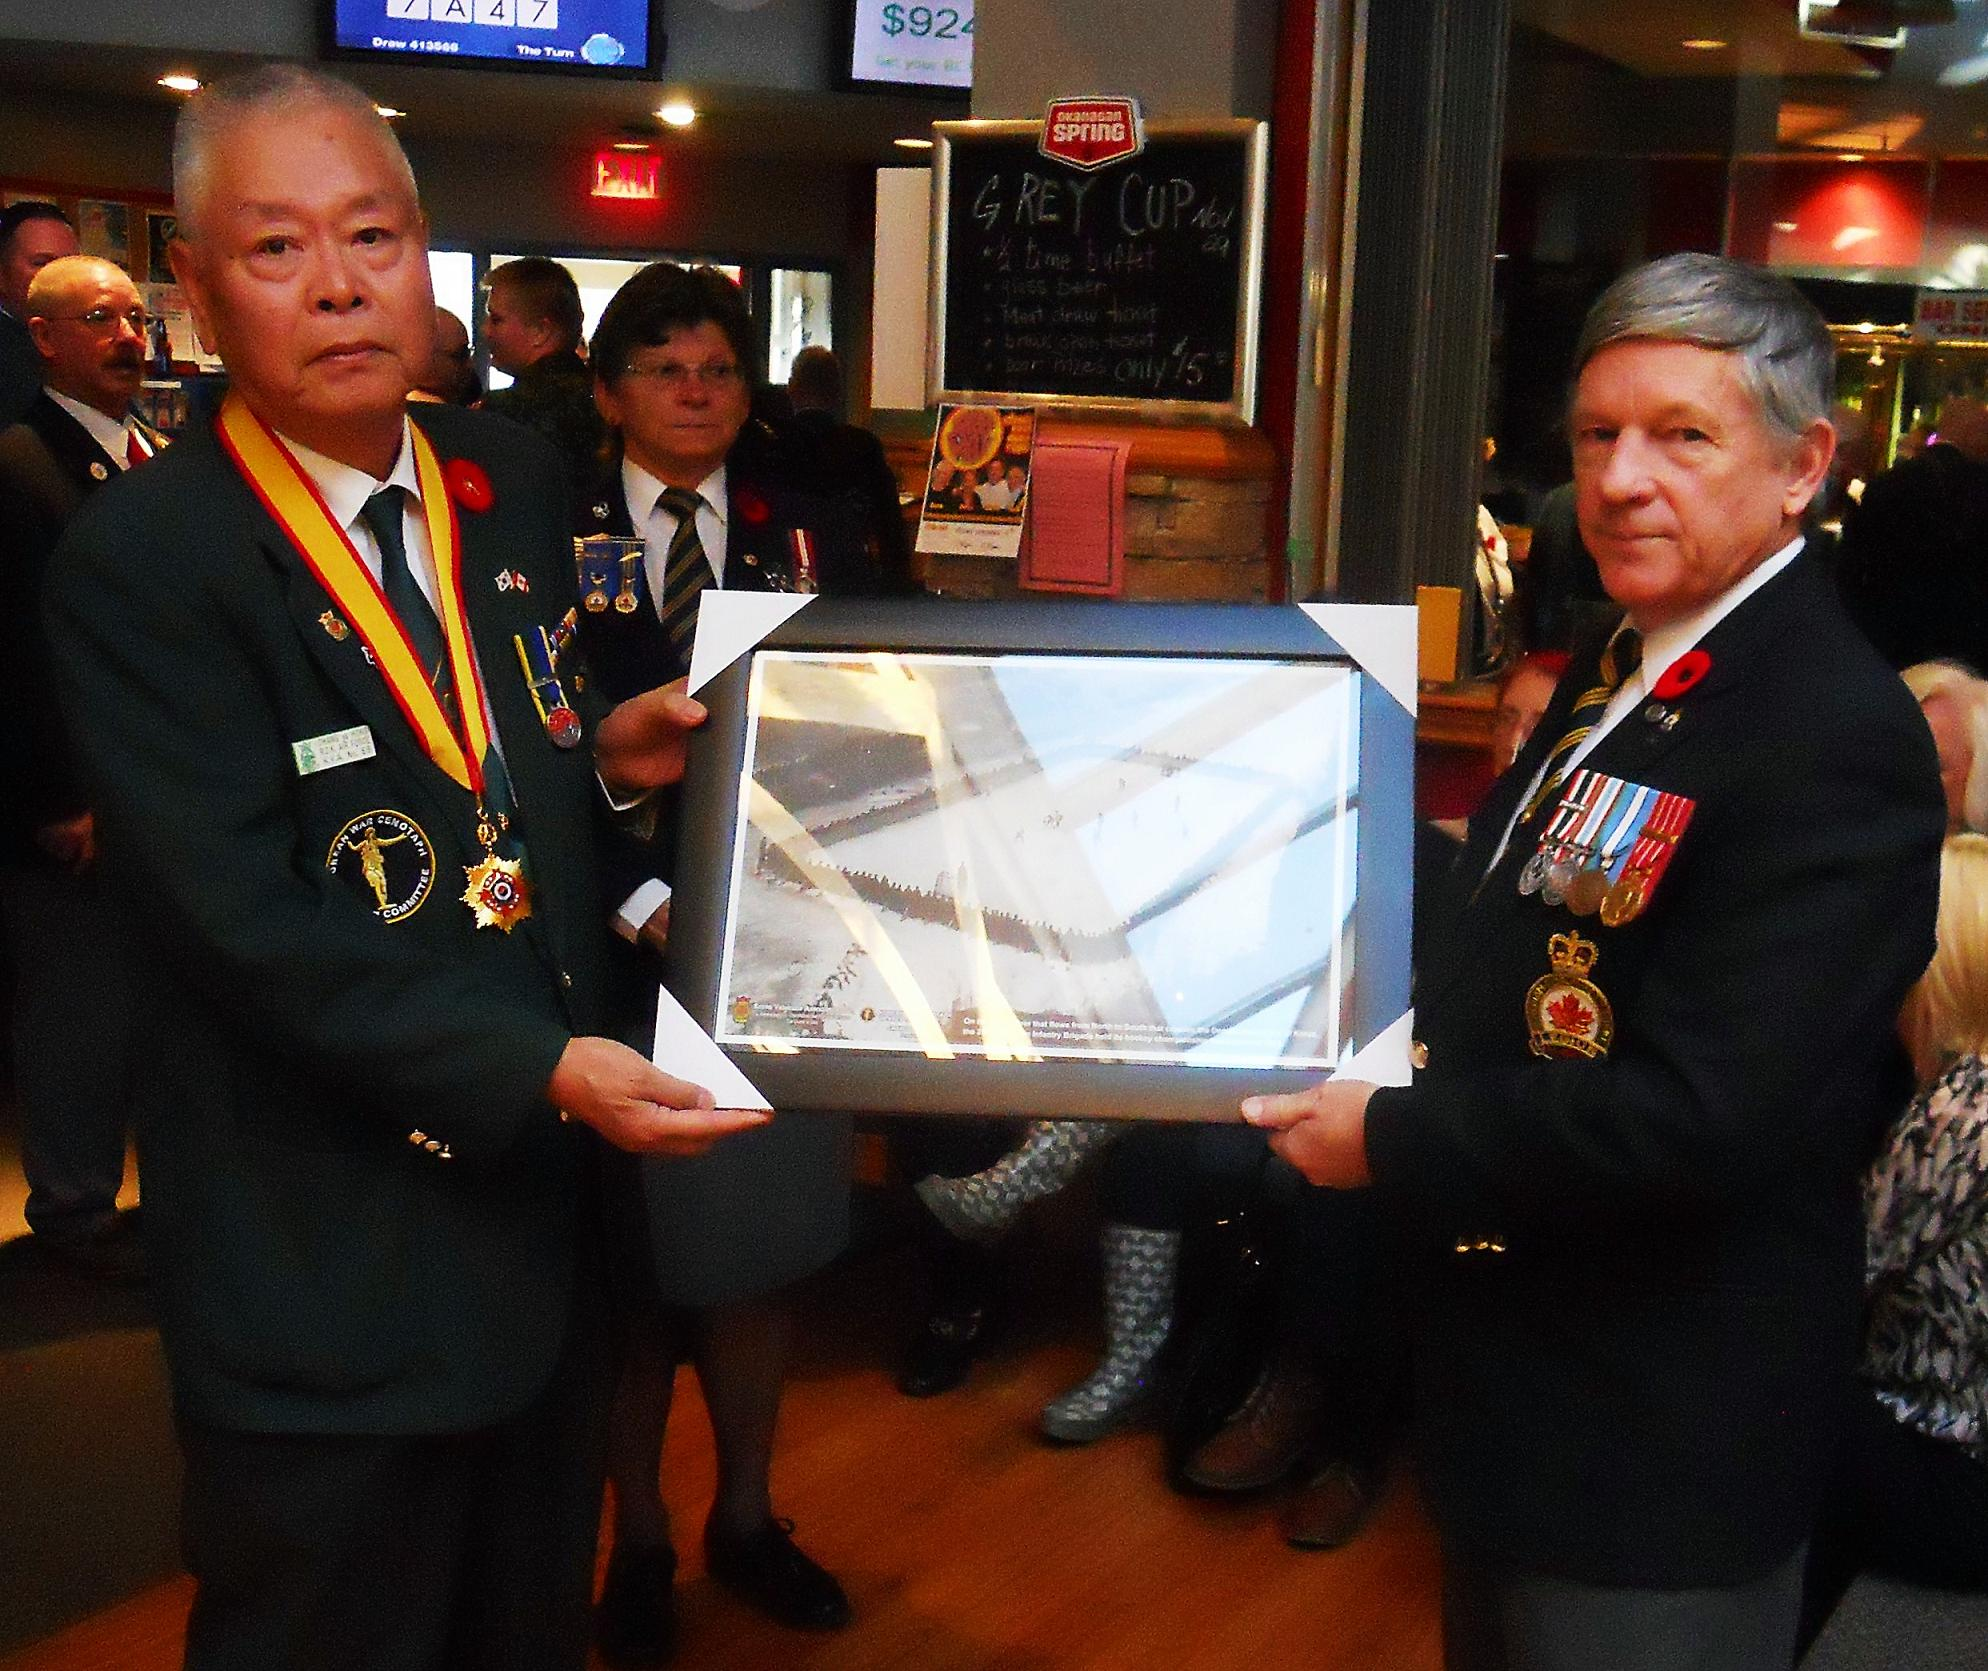 Chang Uy Hong, President of the Korean War Cenotaph Committee presented Branch President Mike Ward with a framed photograph of the famous hockey game played on the Imjin River in Korea in 1953 between the PPCLI and the Royal 22e Regiment.